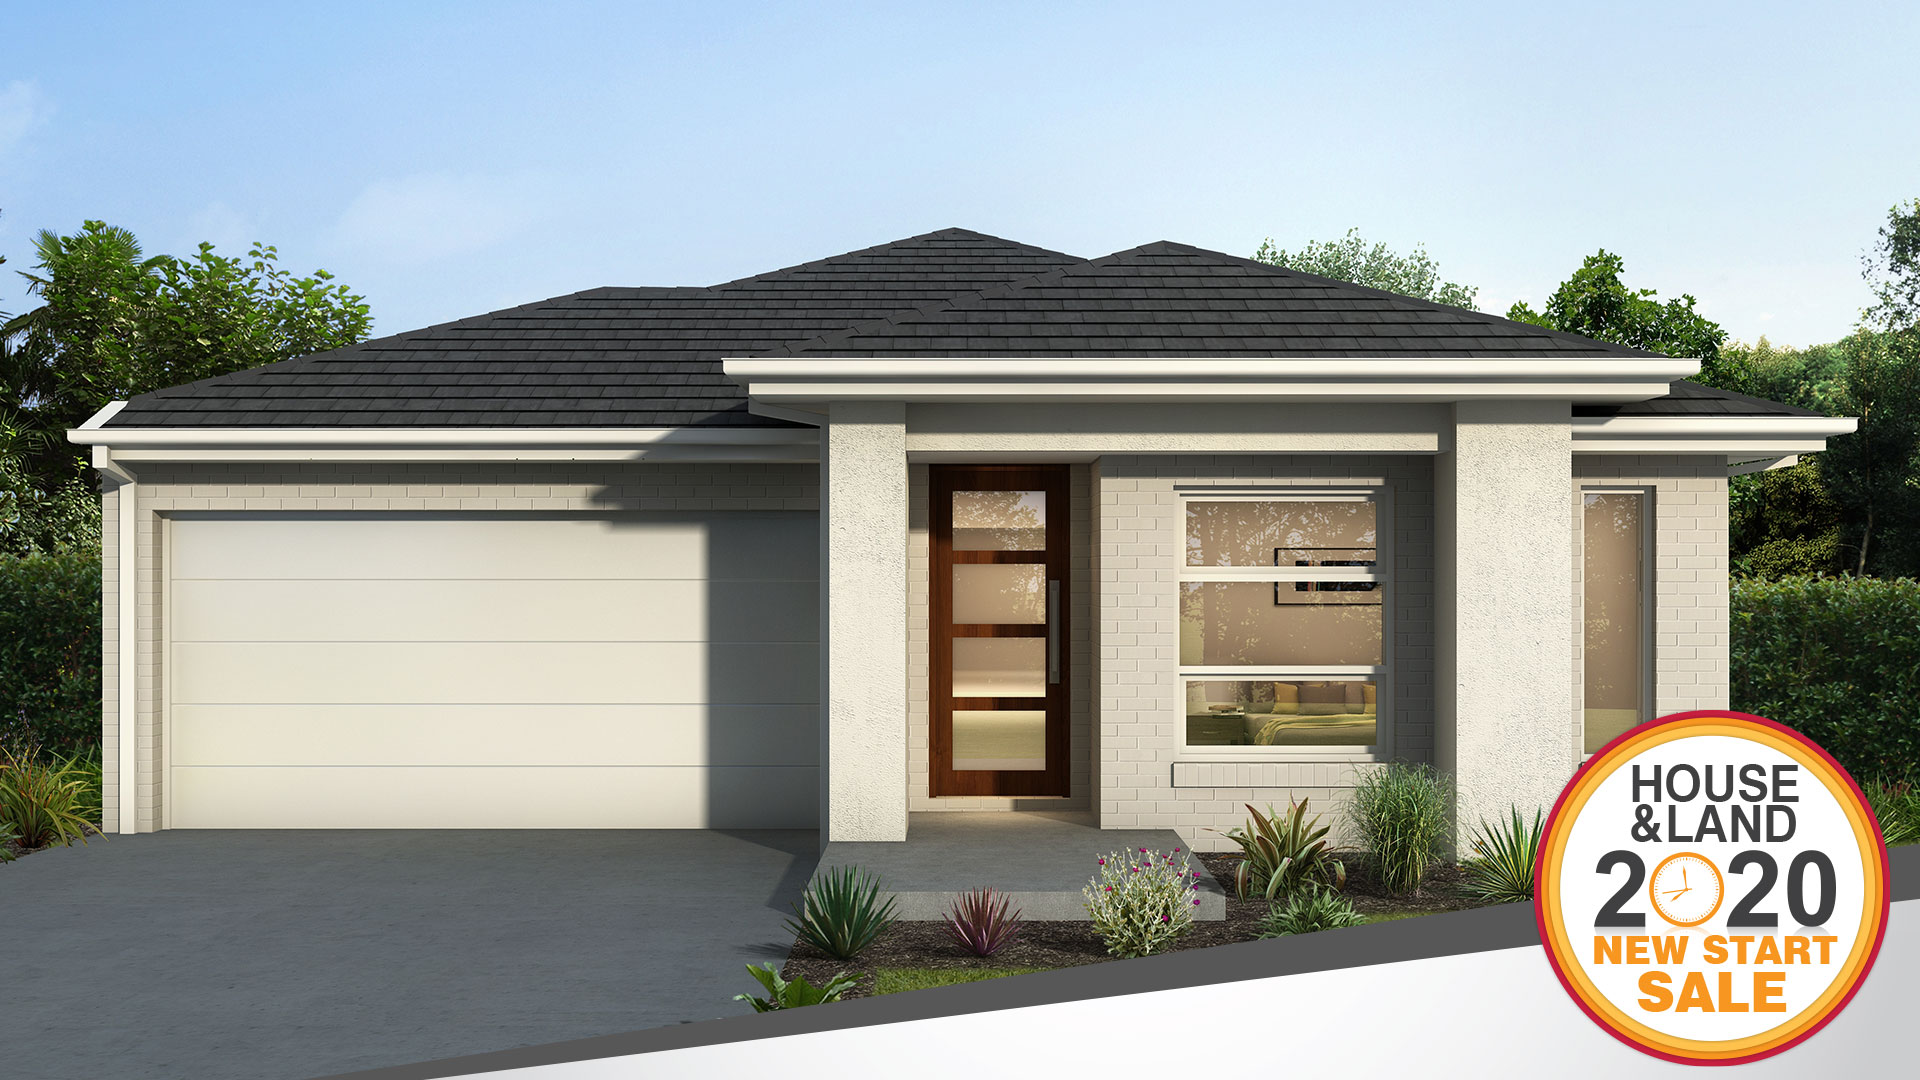 400 House Land New Start Sale WebsiteImages BingaraGorge49